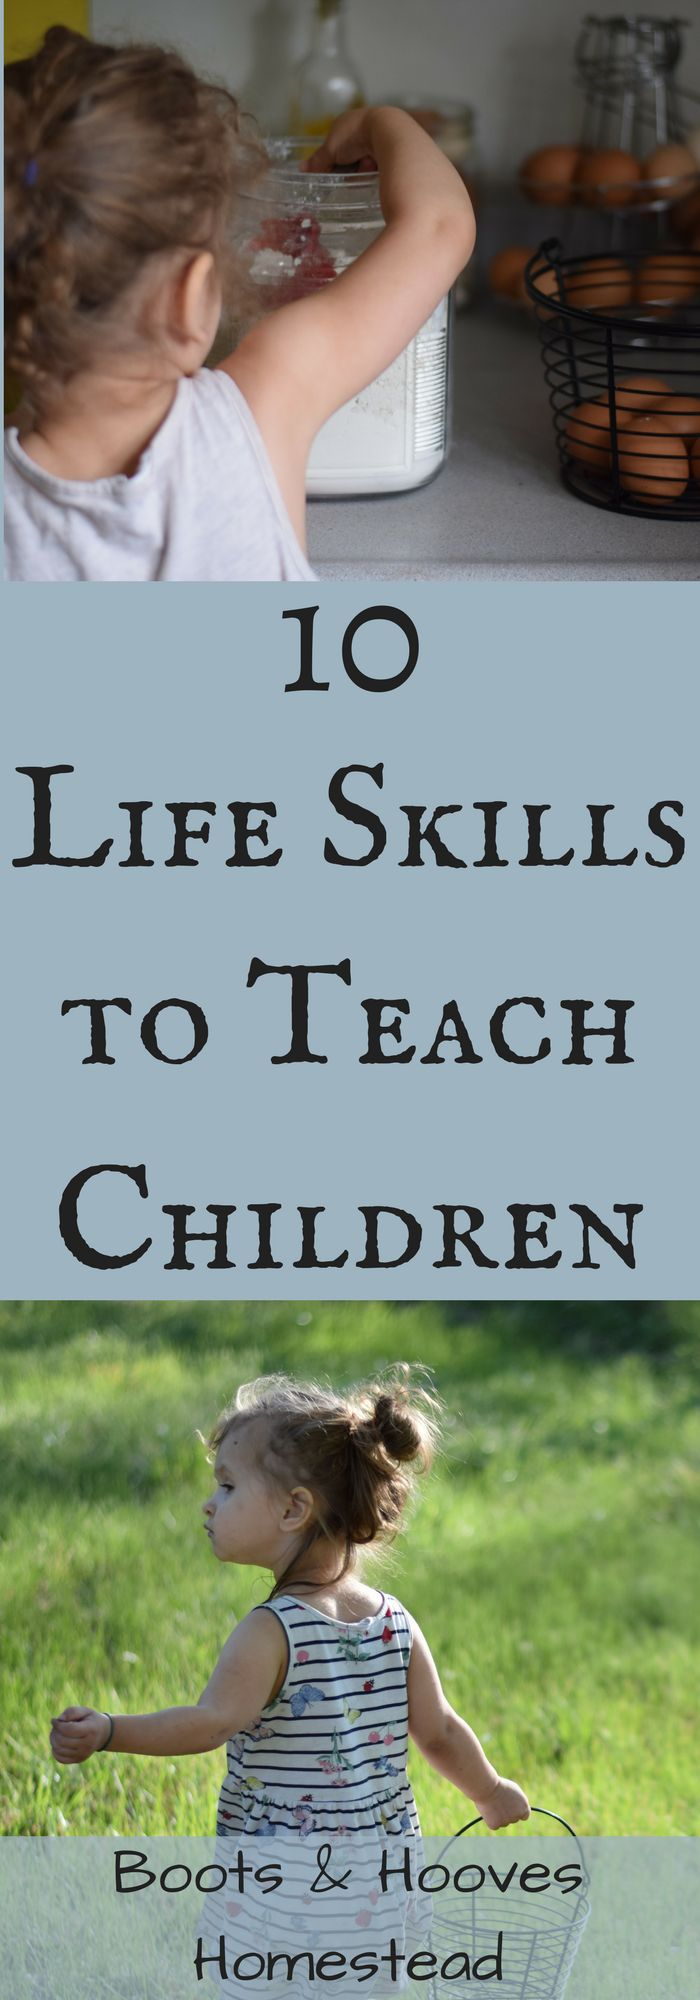 Life Skills to Teach Children Children need to be taught basic life skills in order to survive in the world. I want to nurture my children and provide them